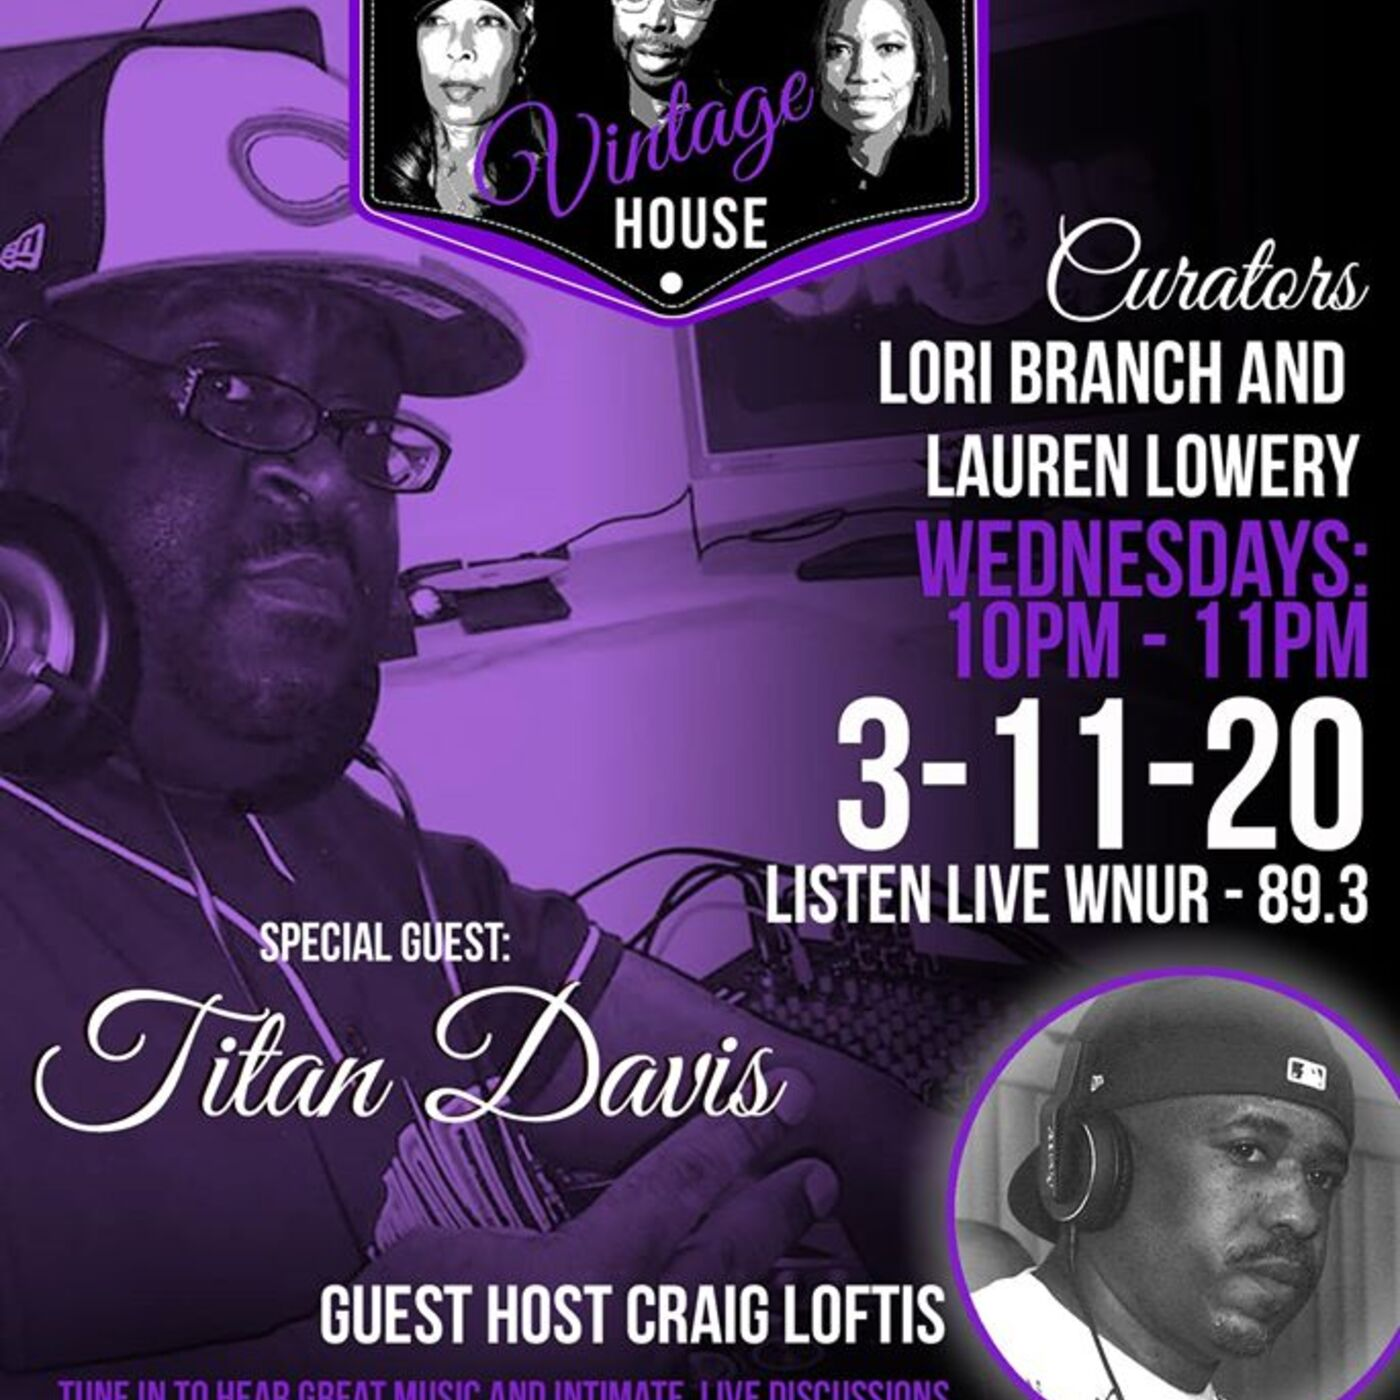 TITAN DAVIS AND Guest CoHost CRAIG LOFTIS on music editing, sharing and the House Community